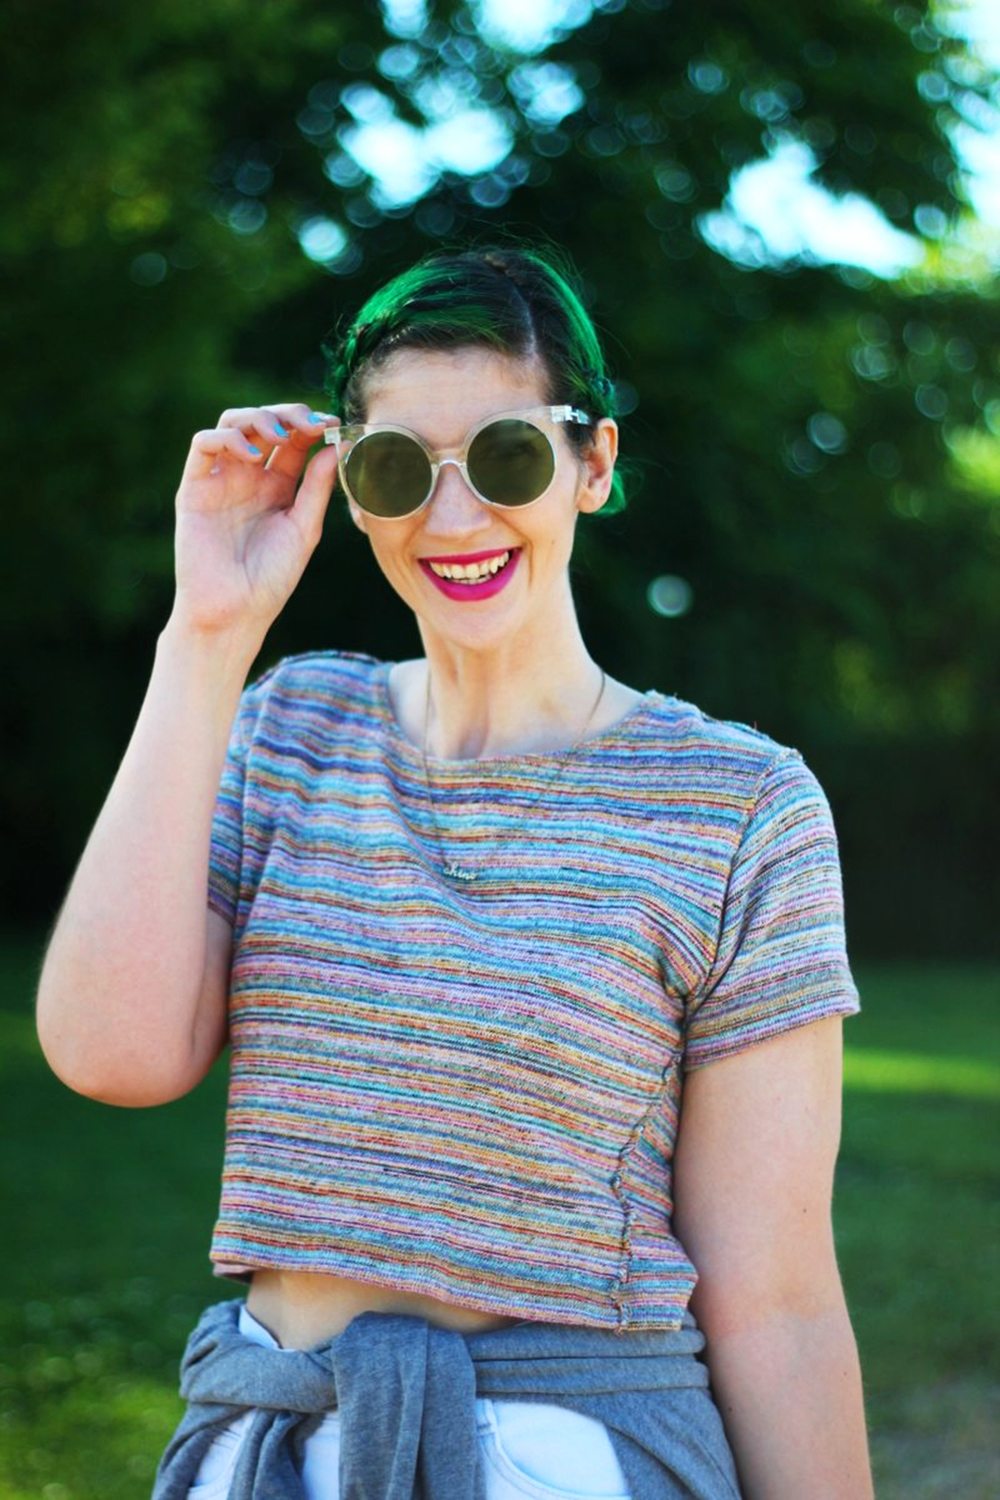 sunglasses-green-hair-striped-crop-top-denim-summer-outfit-02